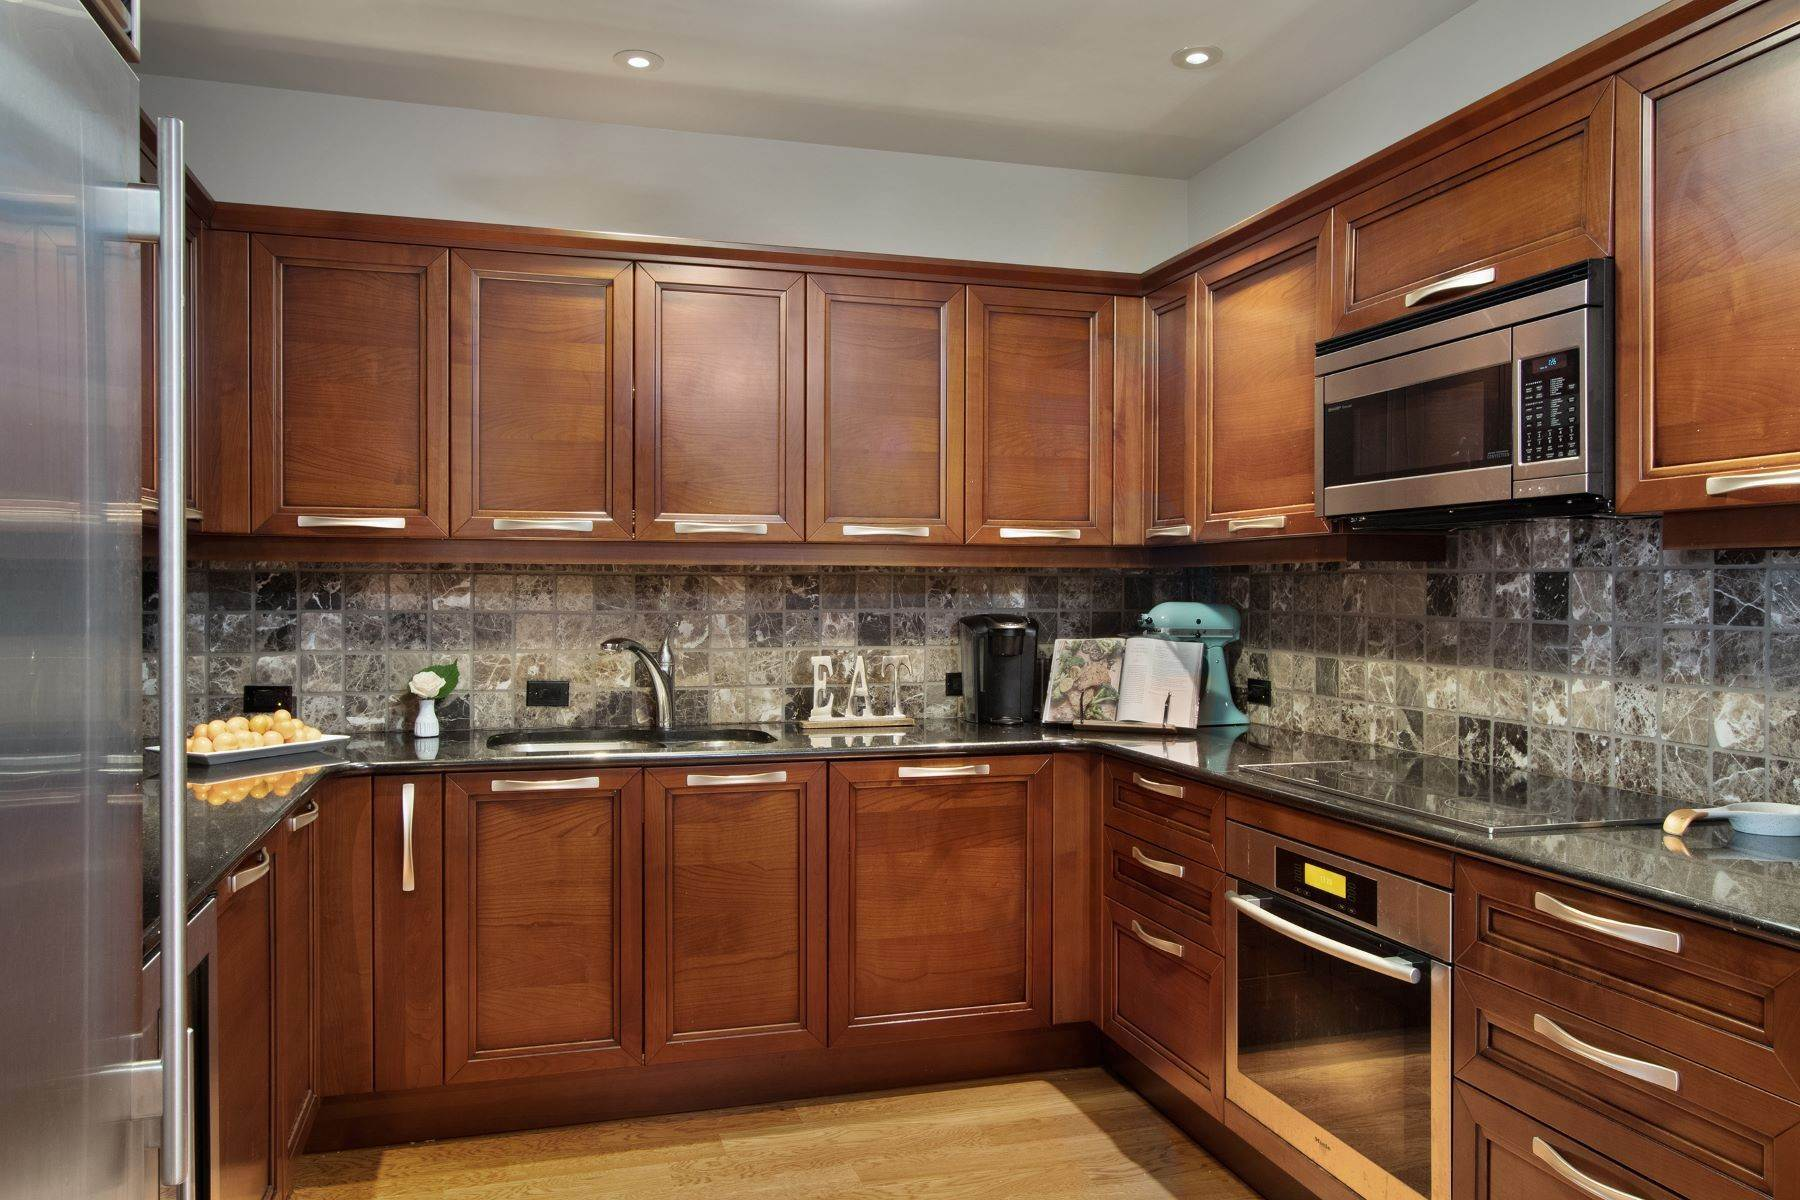 12. Apartments for Sale at 50 S 16TH ST #4202, 4202 Philadelphia, Pennsylvania 19102 United States